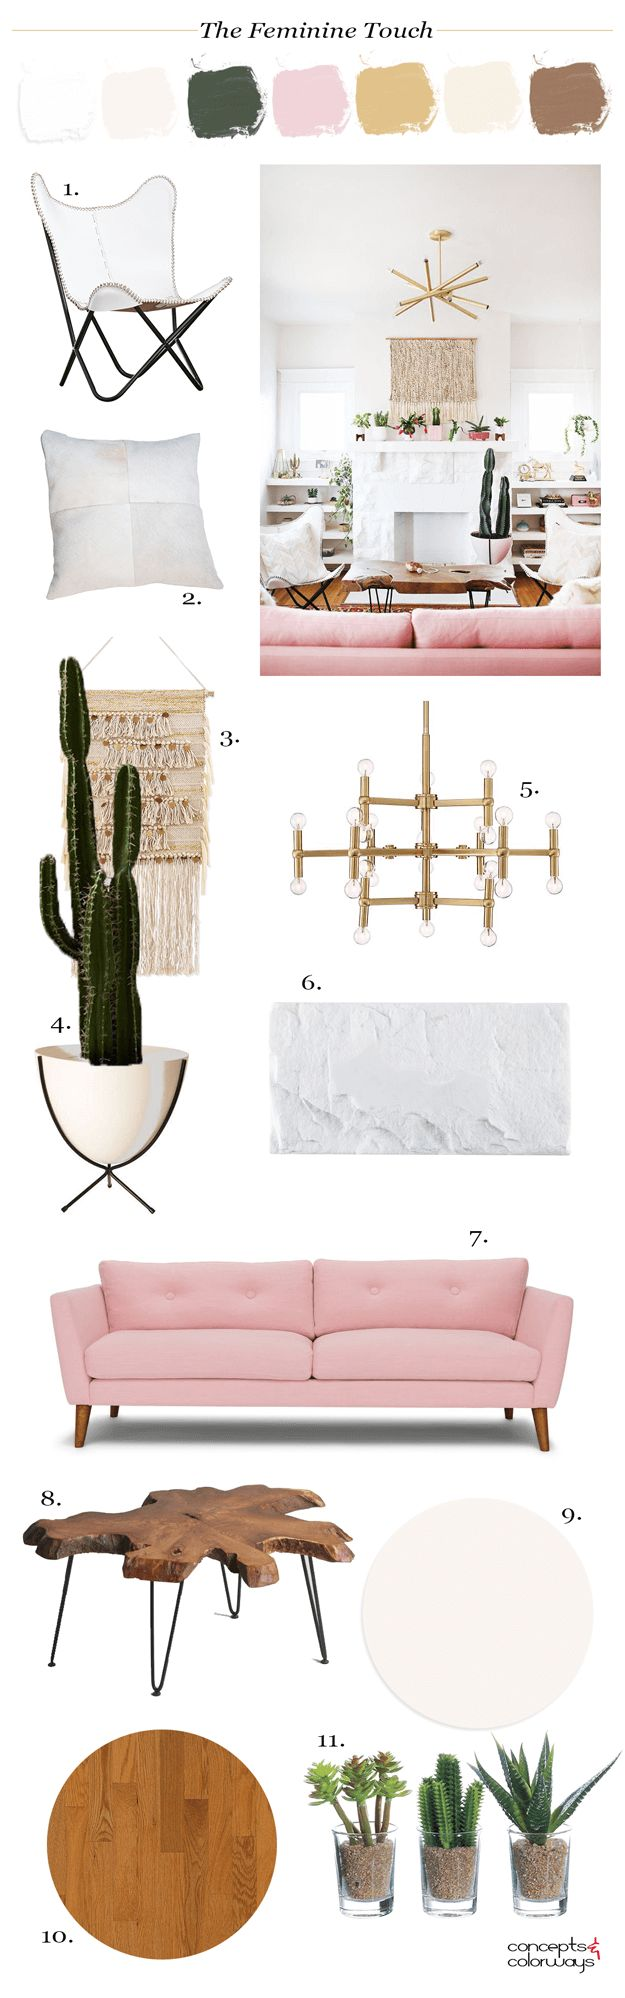 Best 25+ Cowhide pillows ideas on Pinterest | Country ...